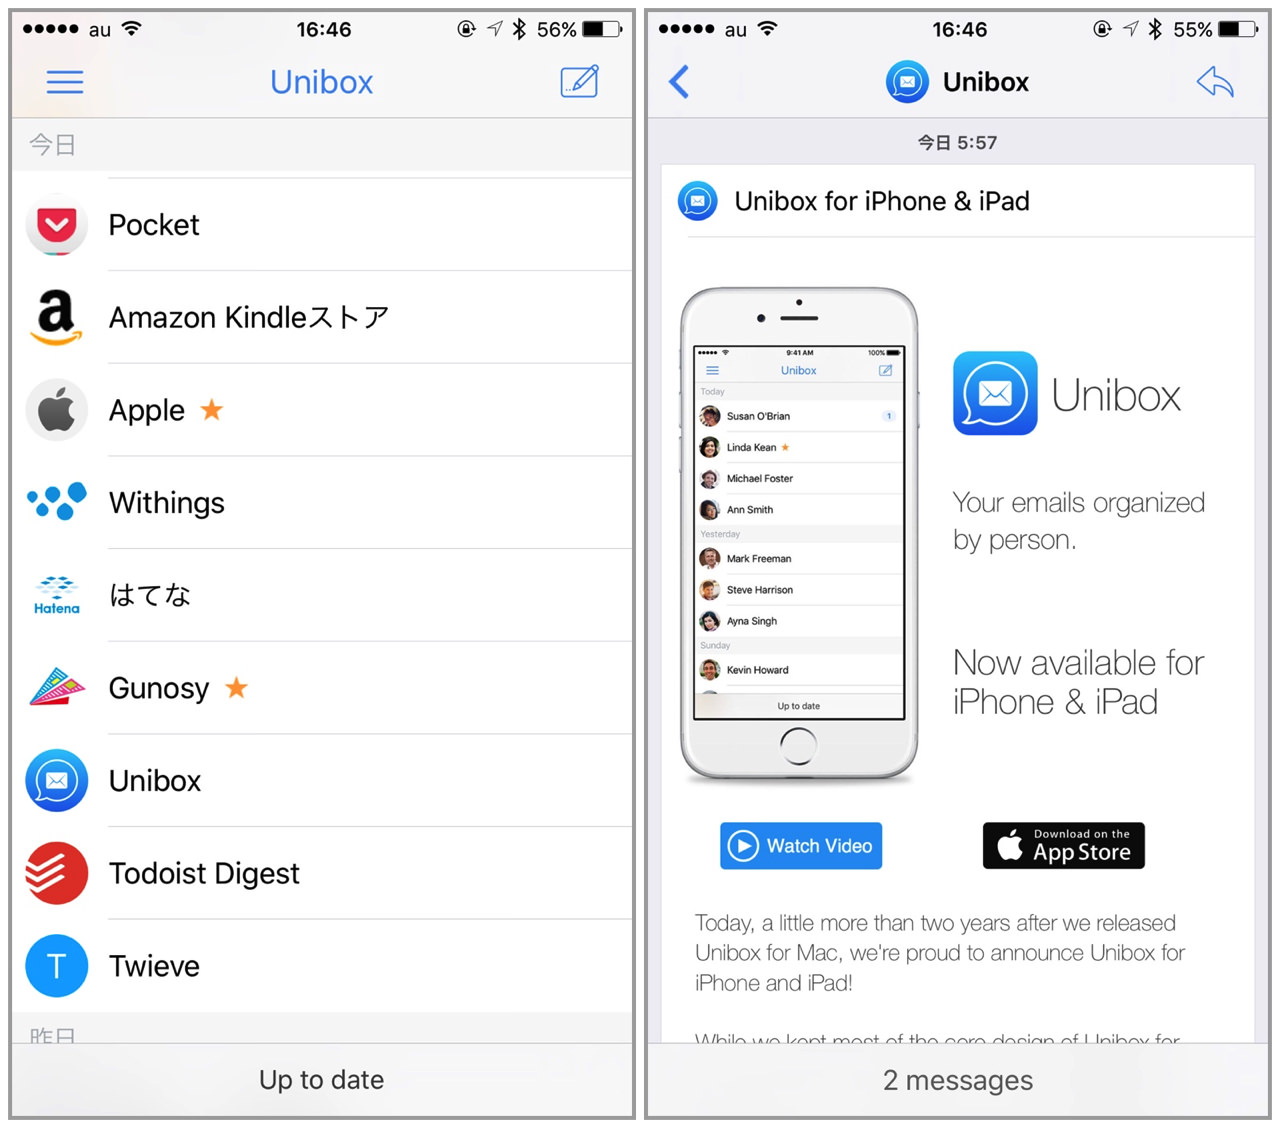 Unibox iphone app version release1